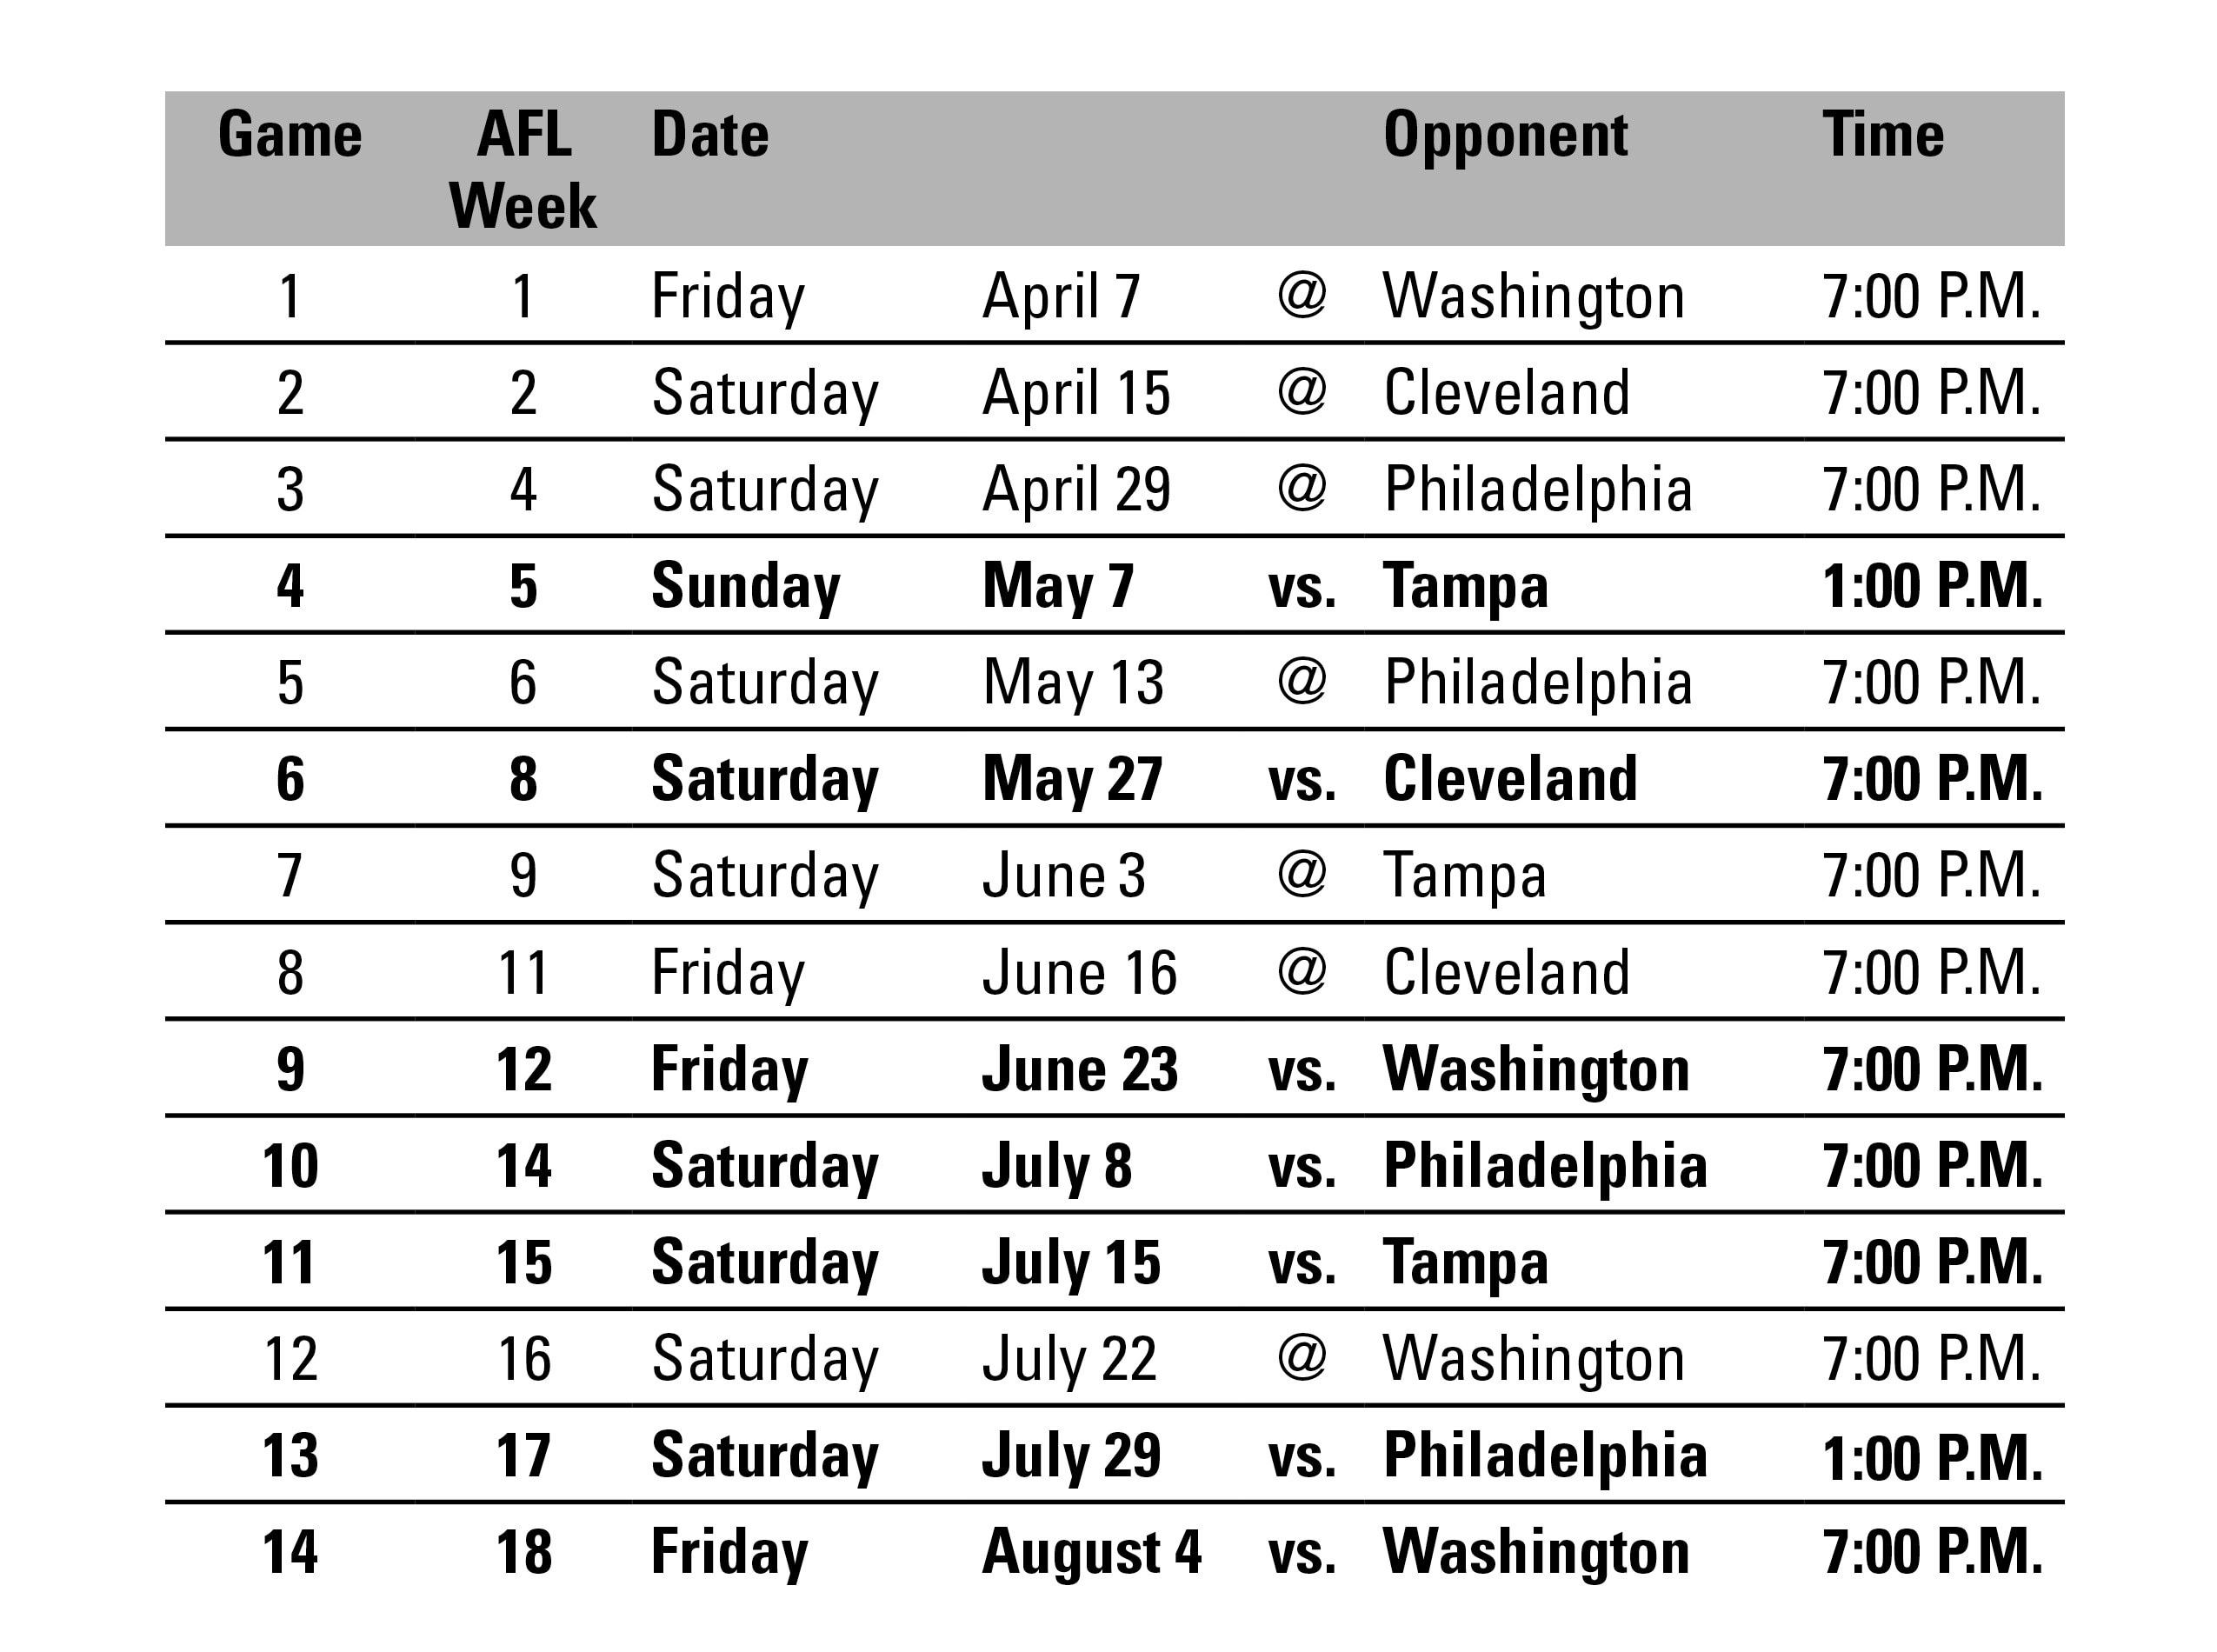 Baltimore AFL Schedule